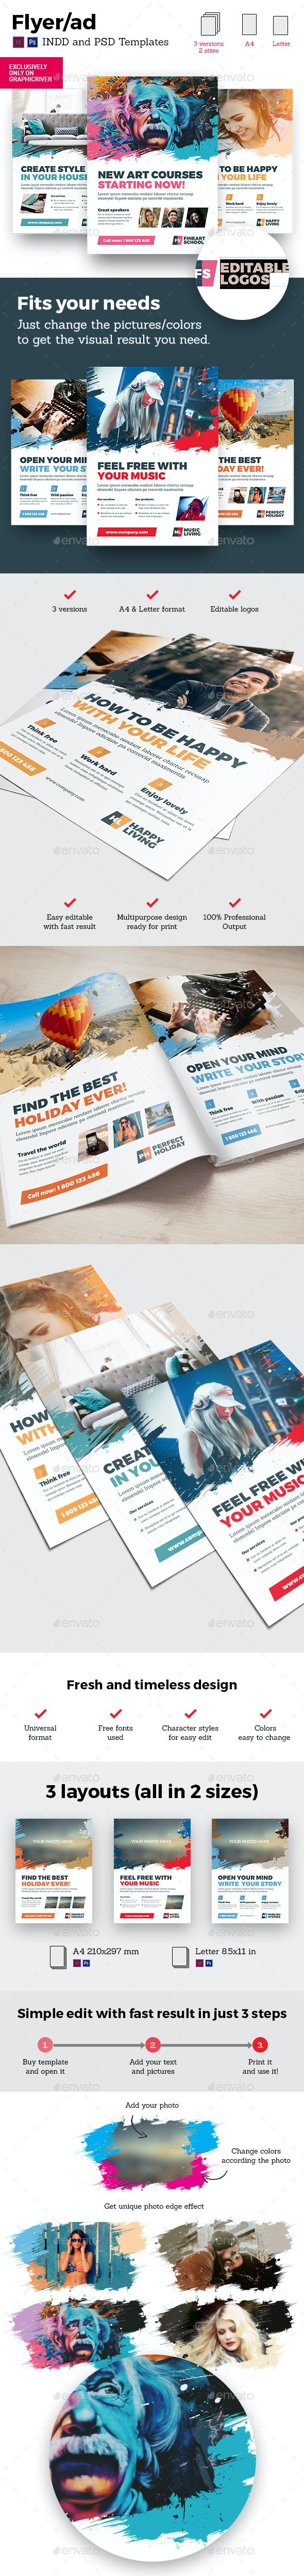 Art Business Universal Flyer/ad 3x InDesign and Photoshop Brush Distortion Template - Flyers Print Templates